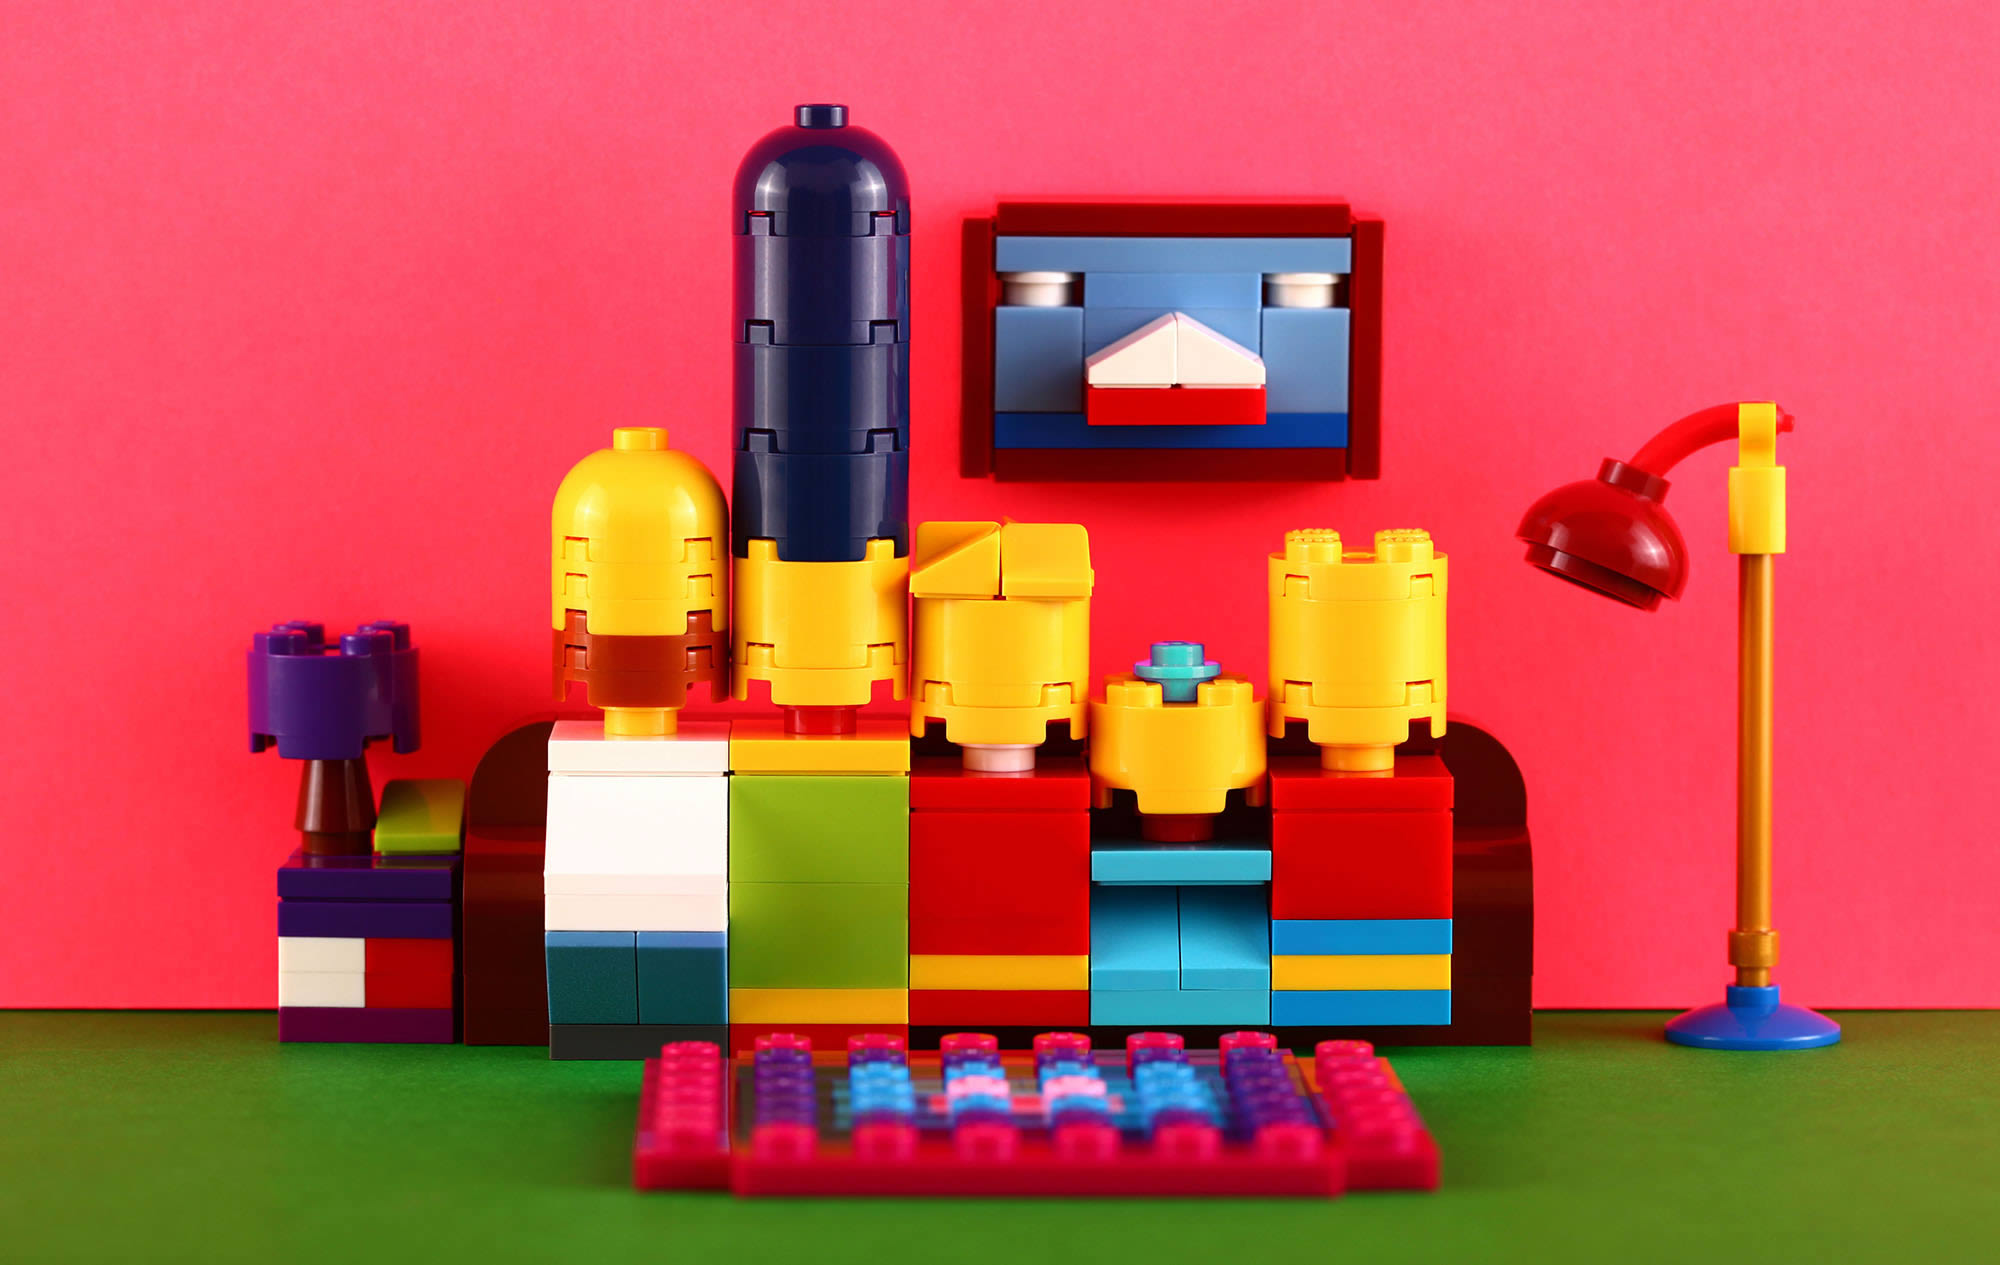 Cool Lego Creations by Kosmas Santosa